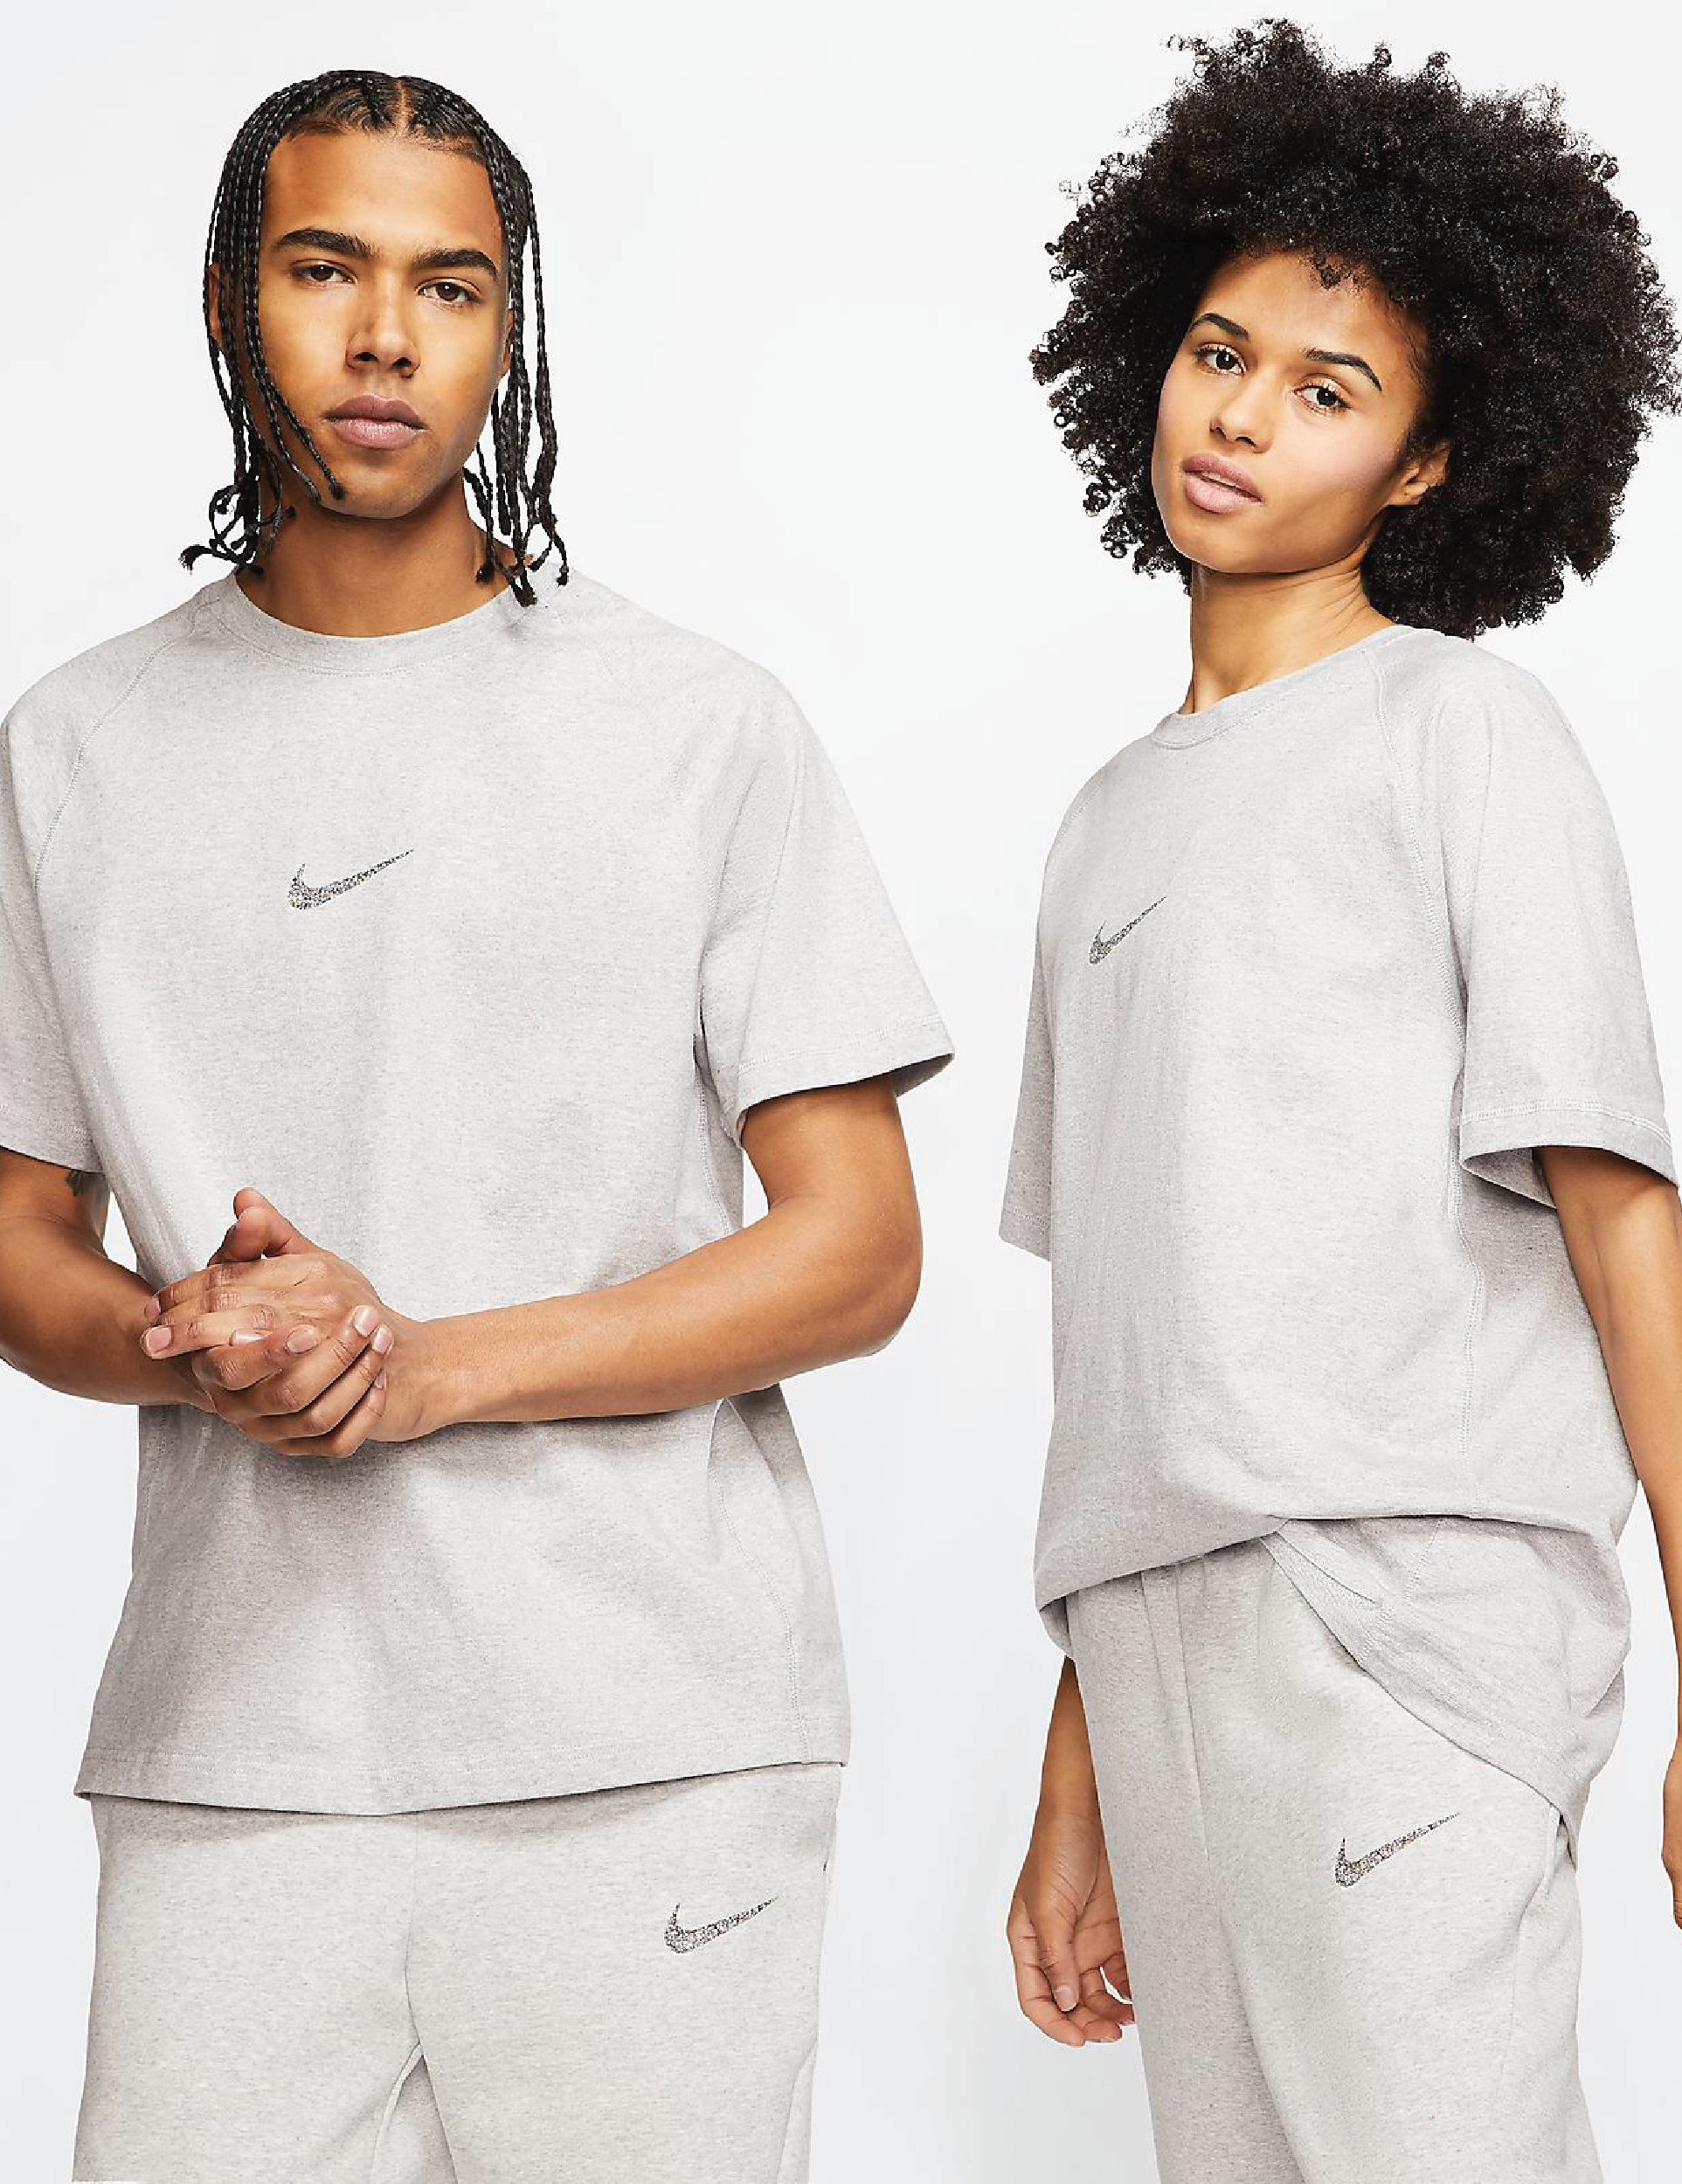 Two models wearing the beige shirt with a Nike swoosh in the center of the chest